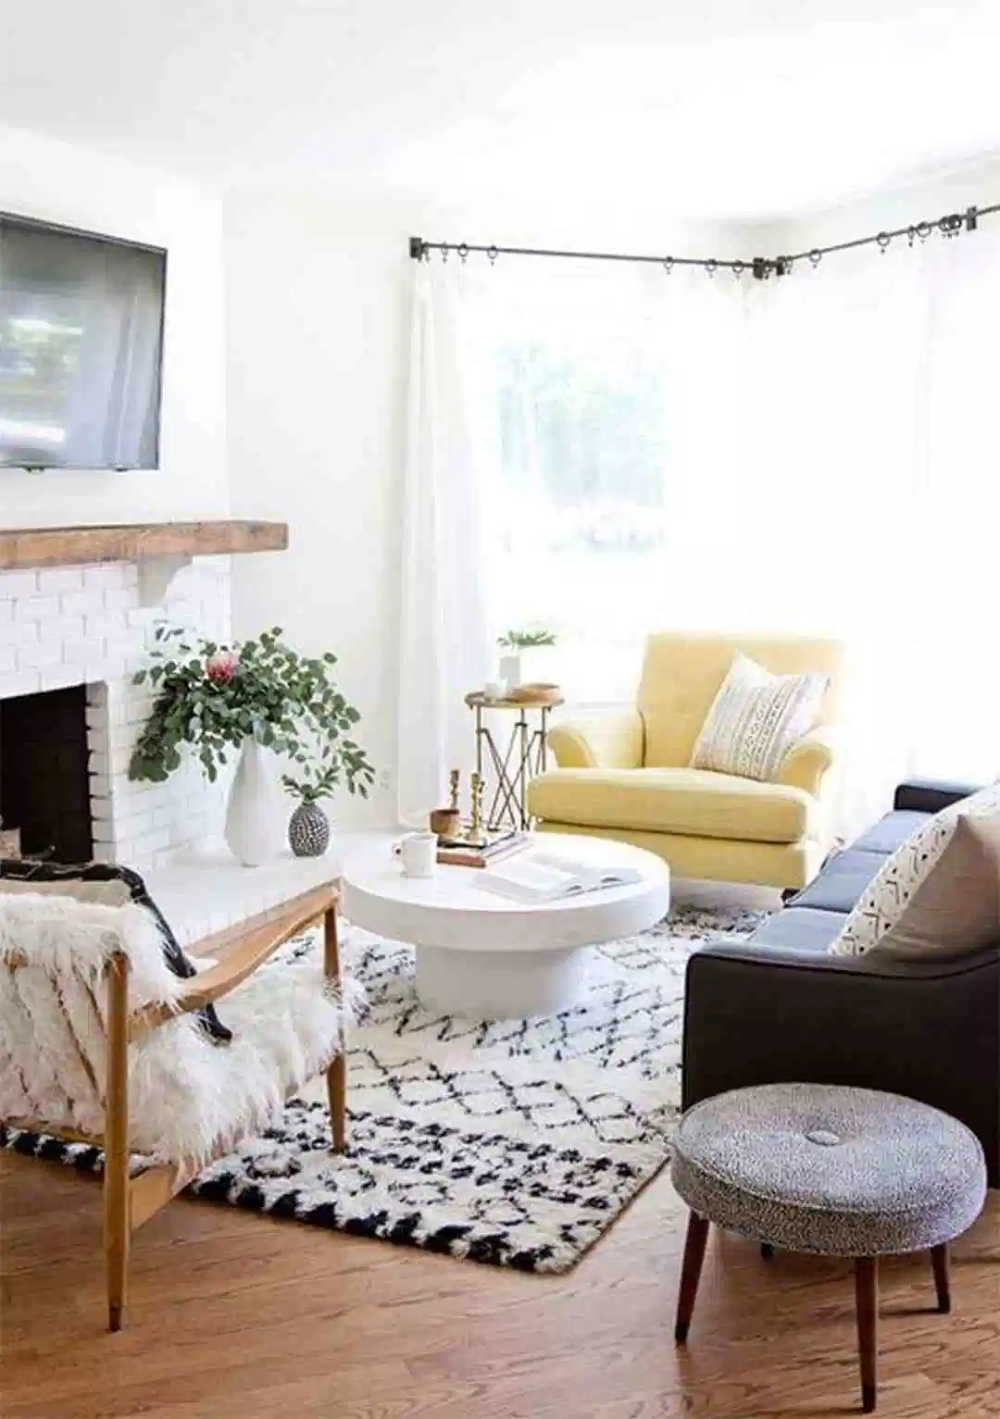 Decorating A 12 X 14 Living Room In 2020 Small Living Room Decor Minimalist Living Room Decor Small Living Room Furniture #small #living #room #space #decorating